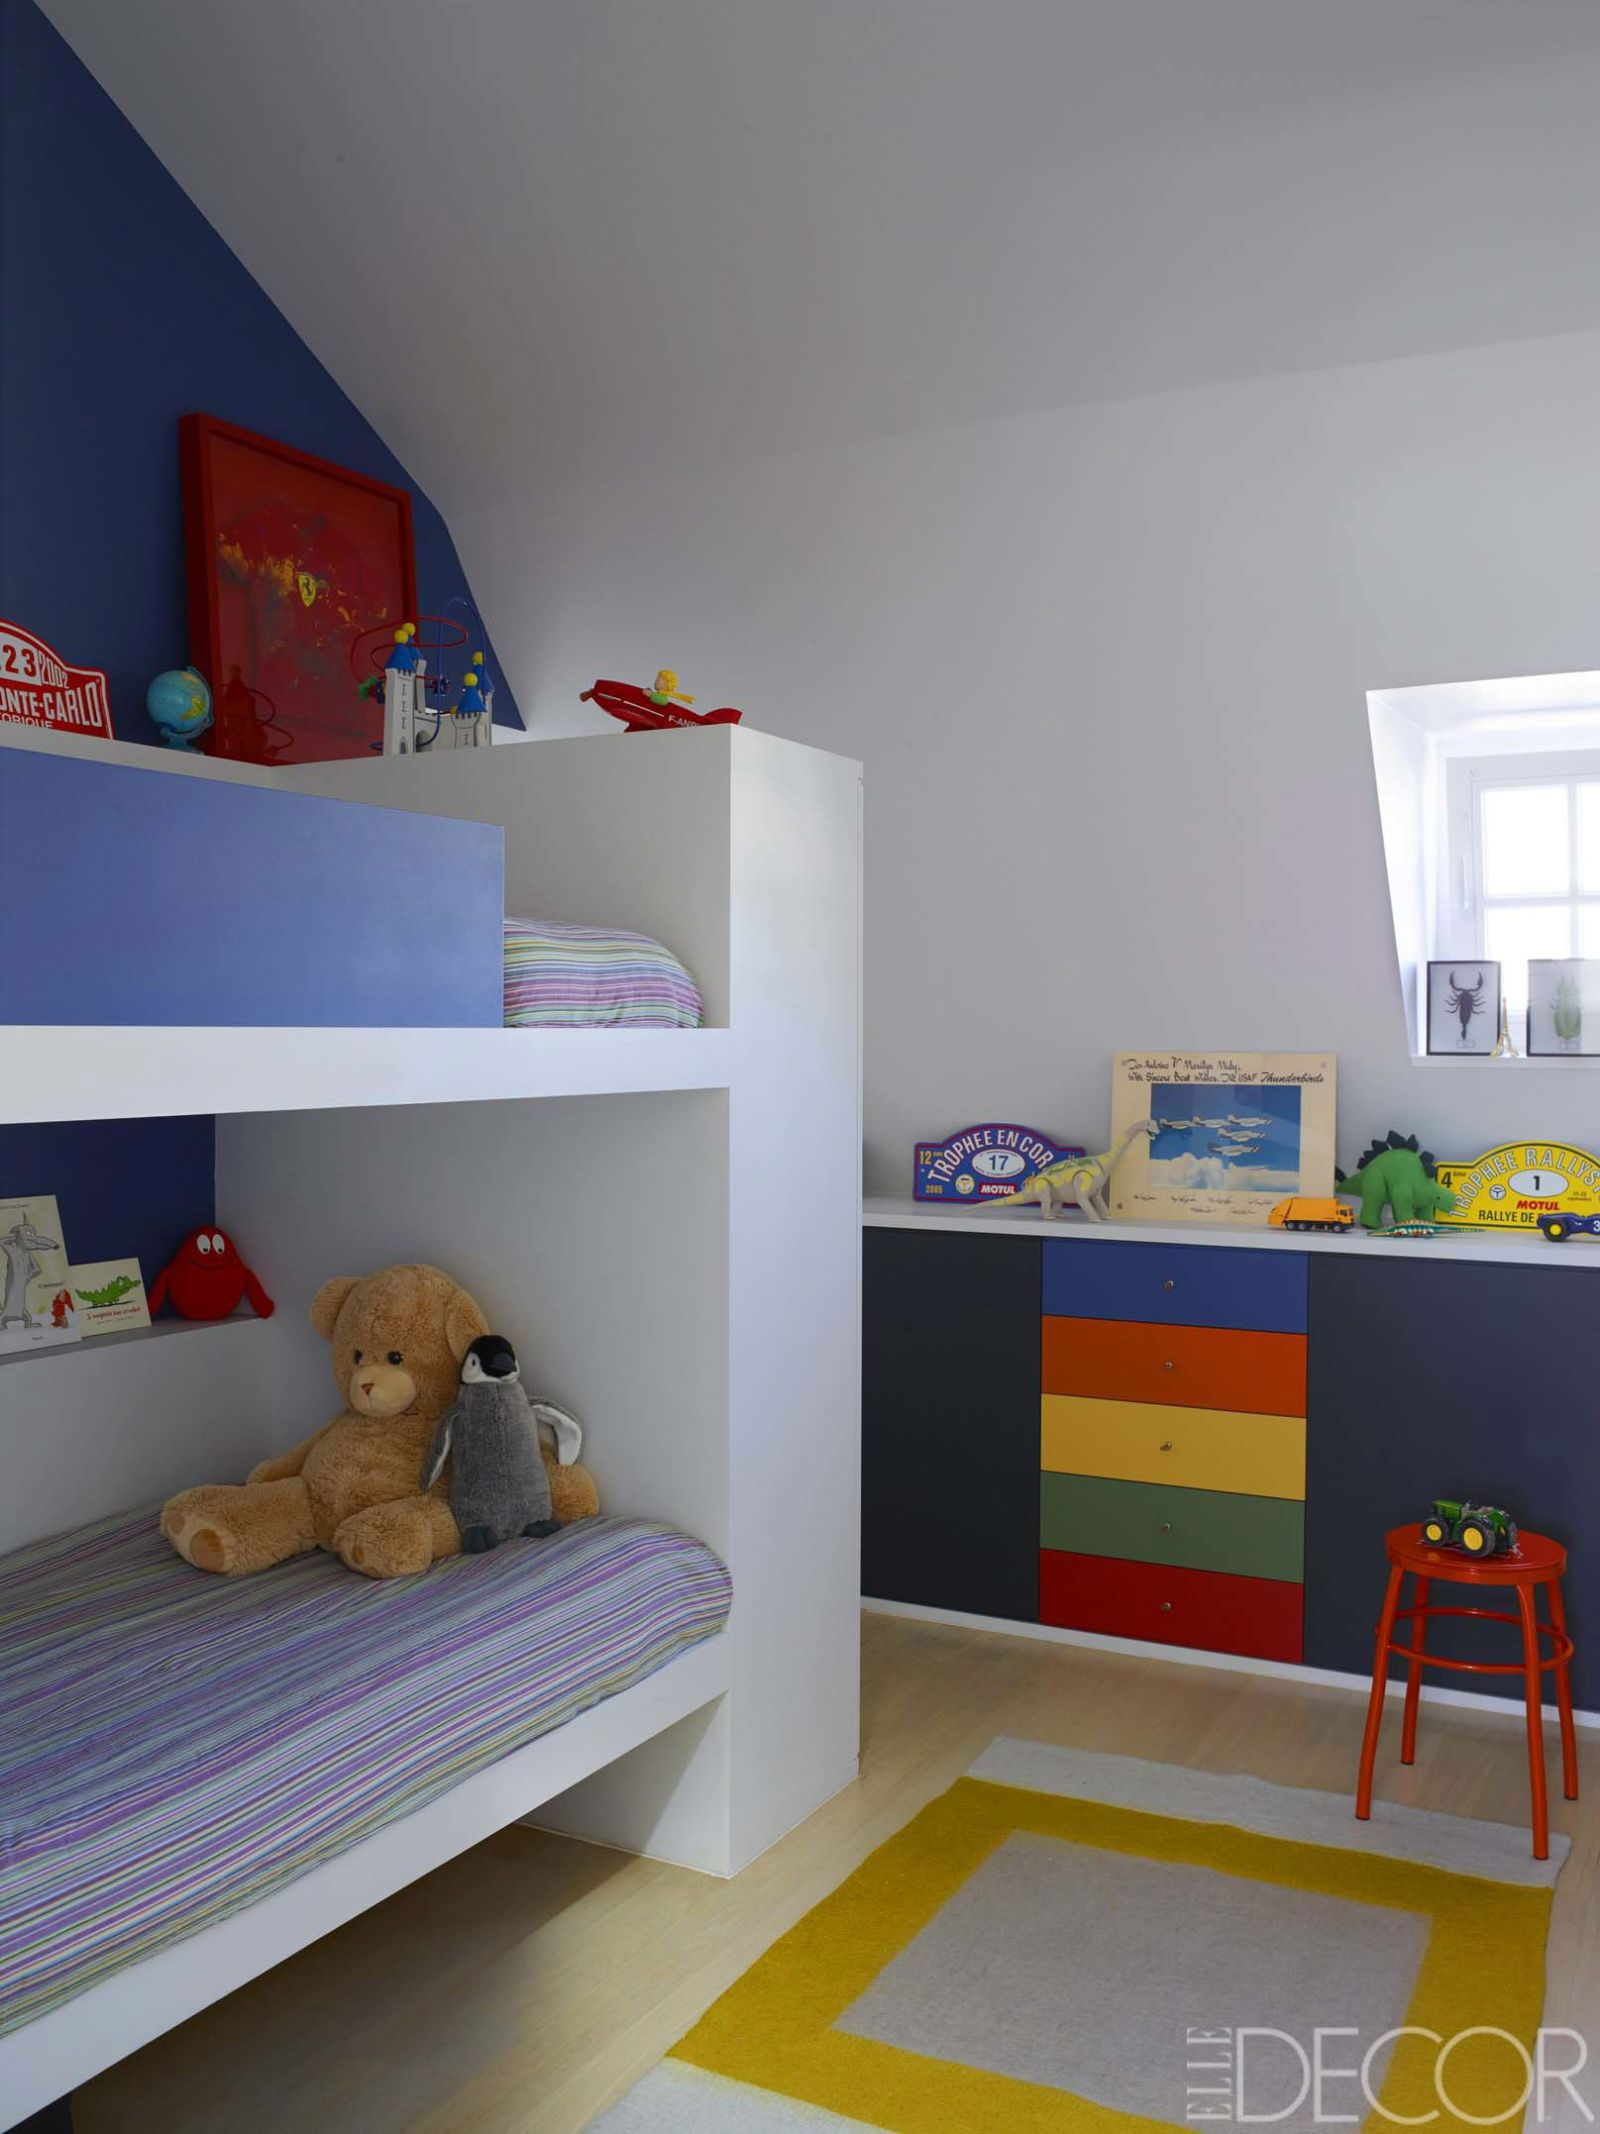 Kids Room Ideas For Boys 15 cool boys bedroom ideas - decorating a little boy room